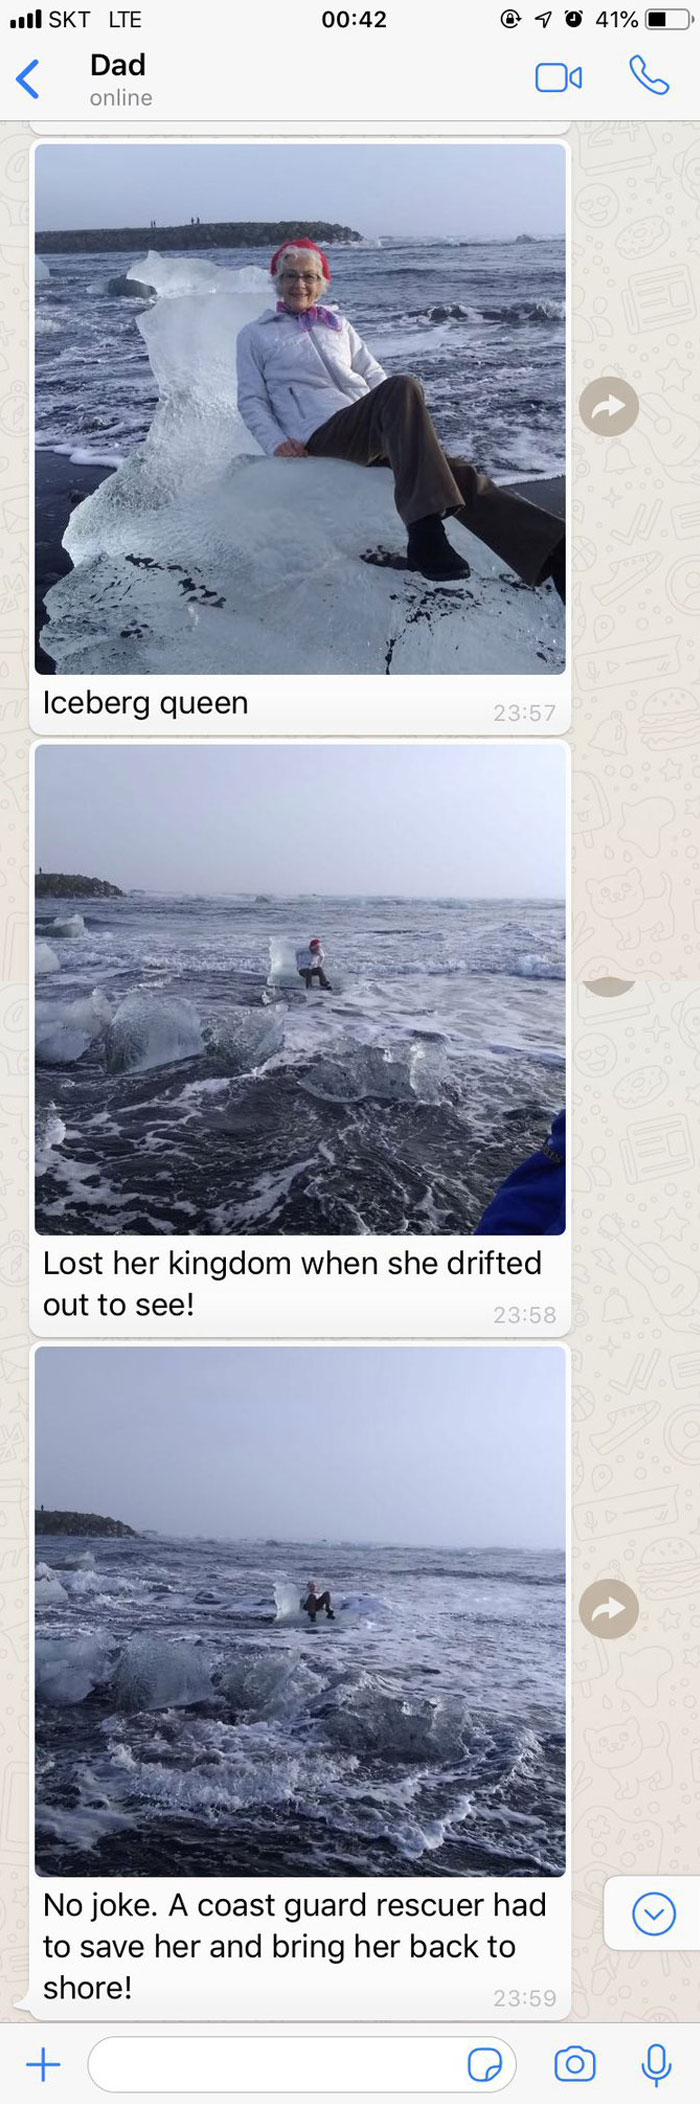 My Grandmother Almost Got Lost At Sea In Iceland